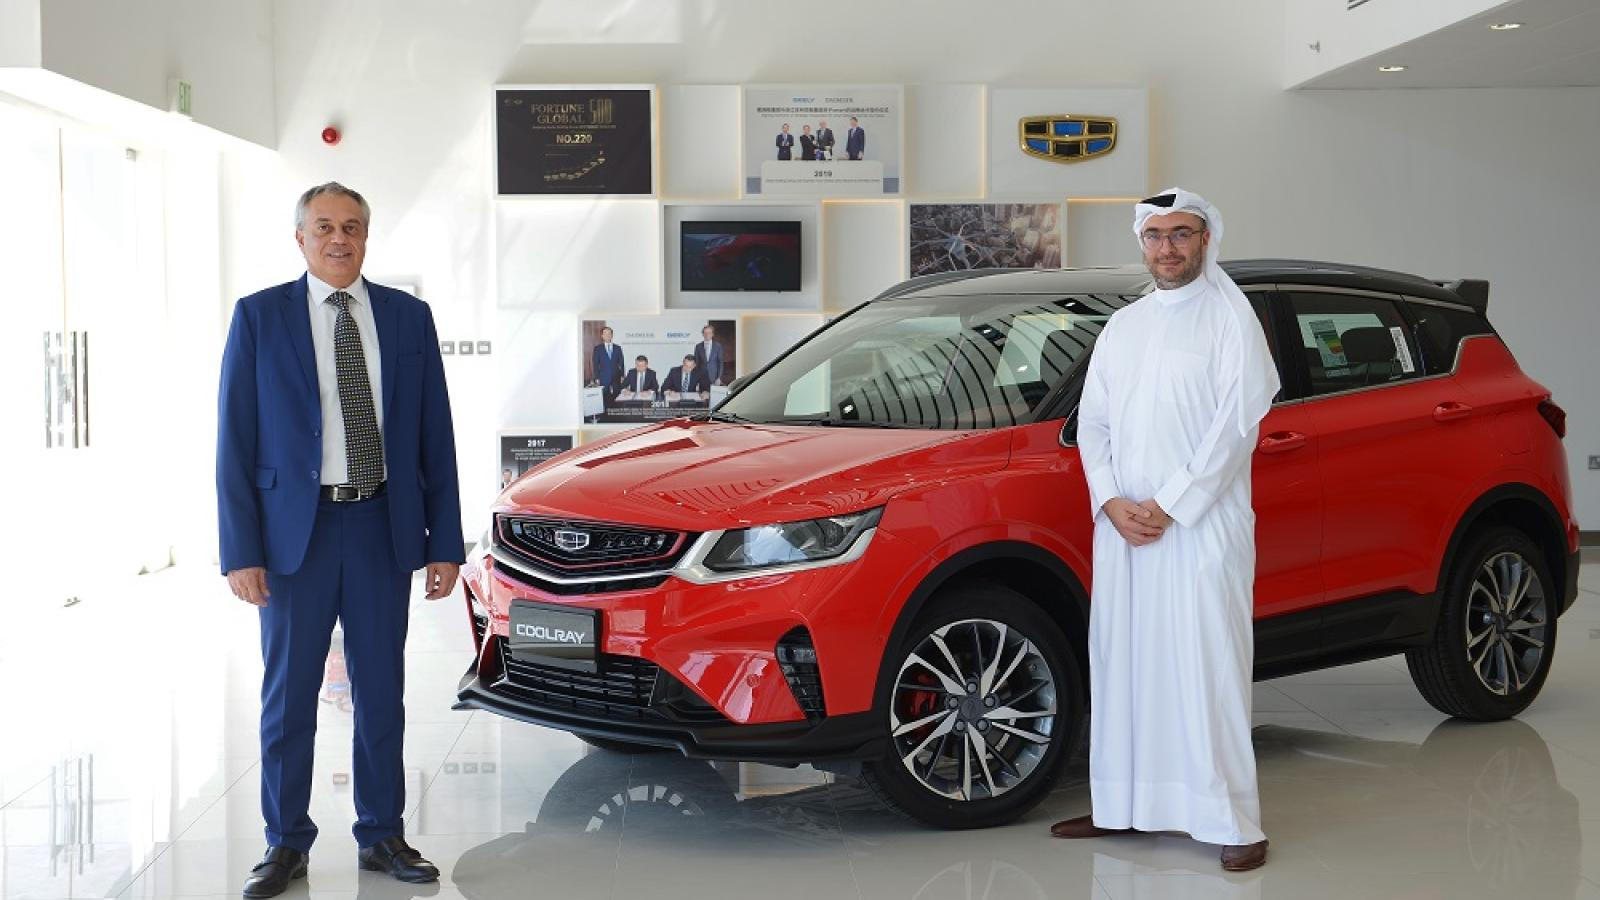 WATCH: Jaidah Group opens first-ever Geely Auto showroom in Qatar